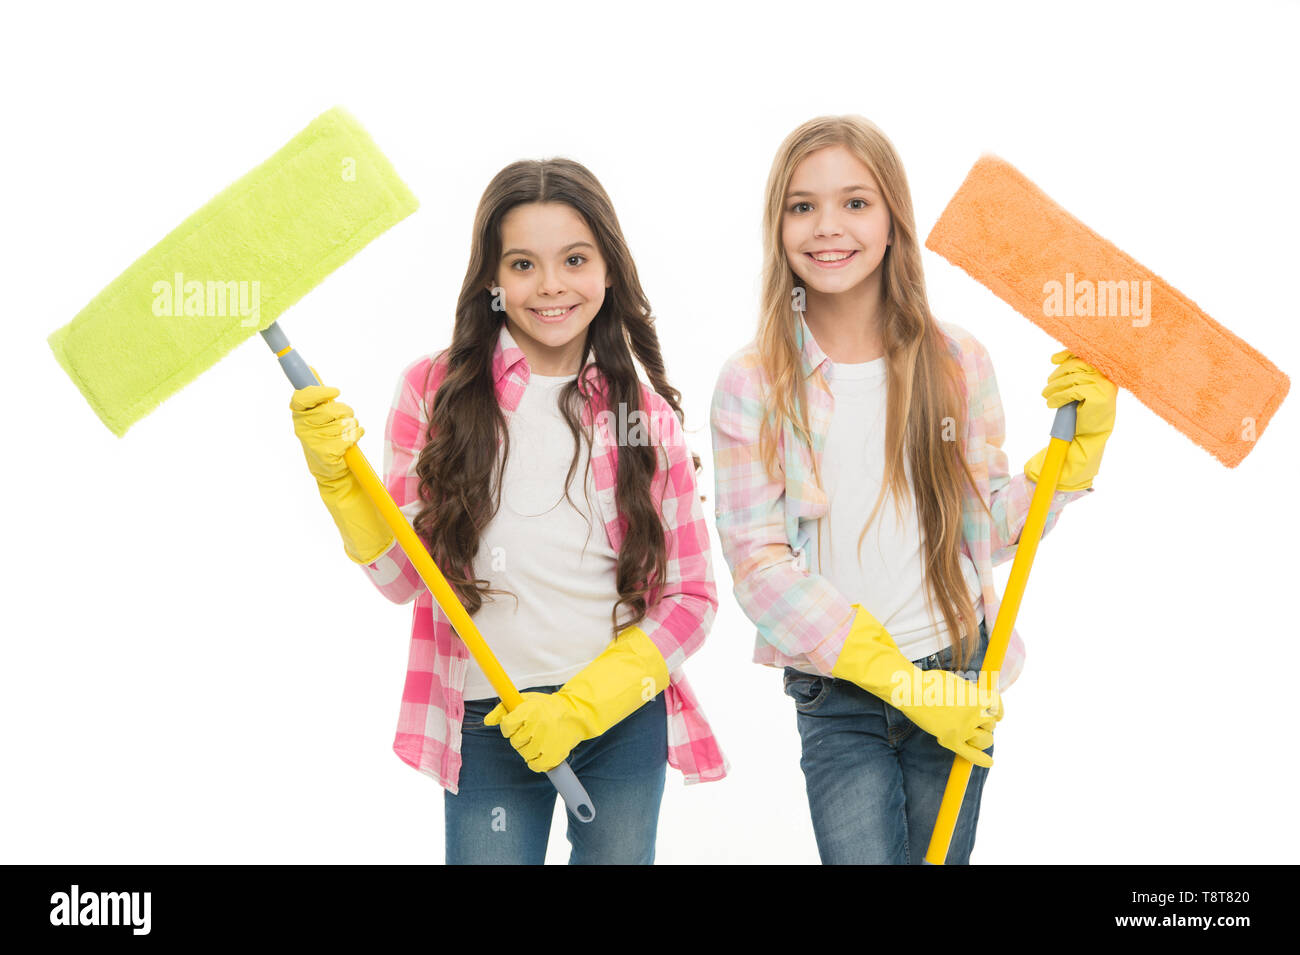 Sisters hold wet mops ready start cleaning day. Girls cute kids cleaning around. Keep it clean. Helpful cheerful kids cleaning together. Girls with protective gloves and mops ready for cleaning. - Stock Image